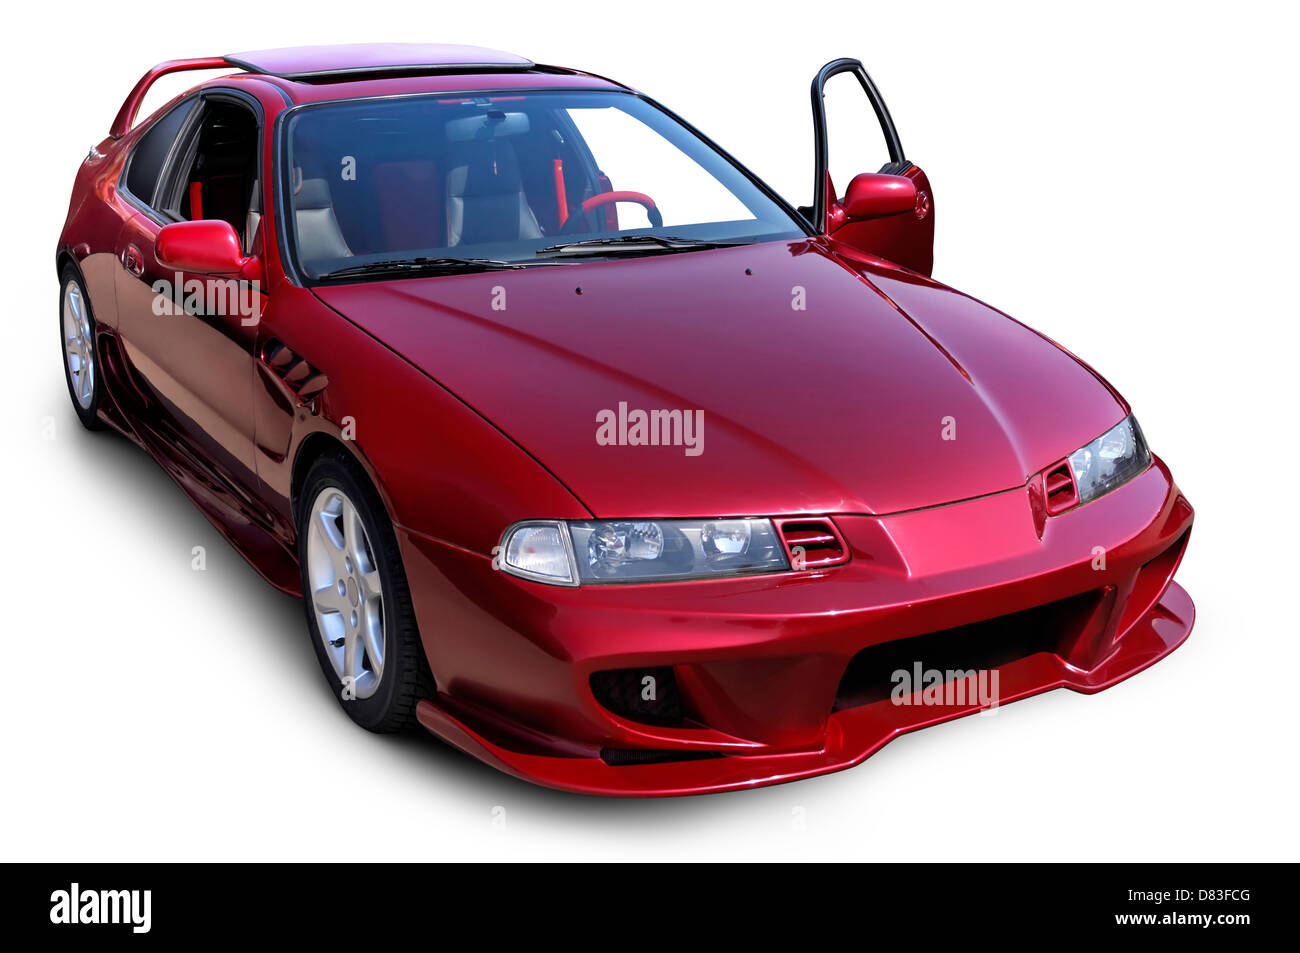 Custom Mitsubishi Eclipse Red Sports Car Isolated On White Background With  Clipping Path   Stock Image